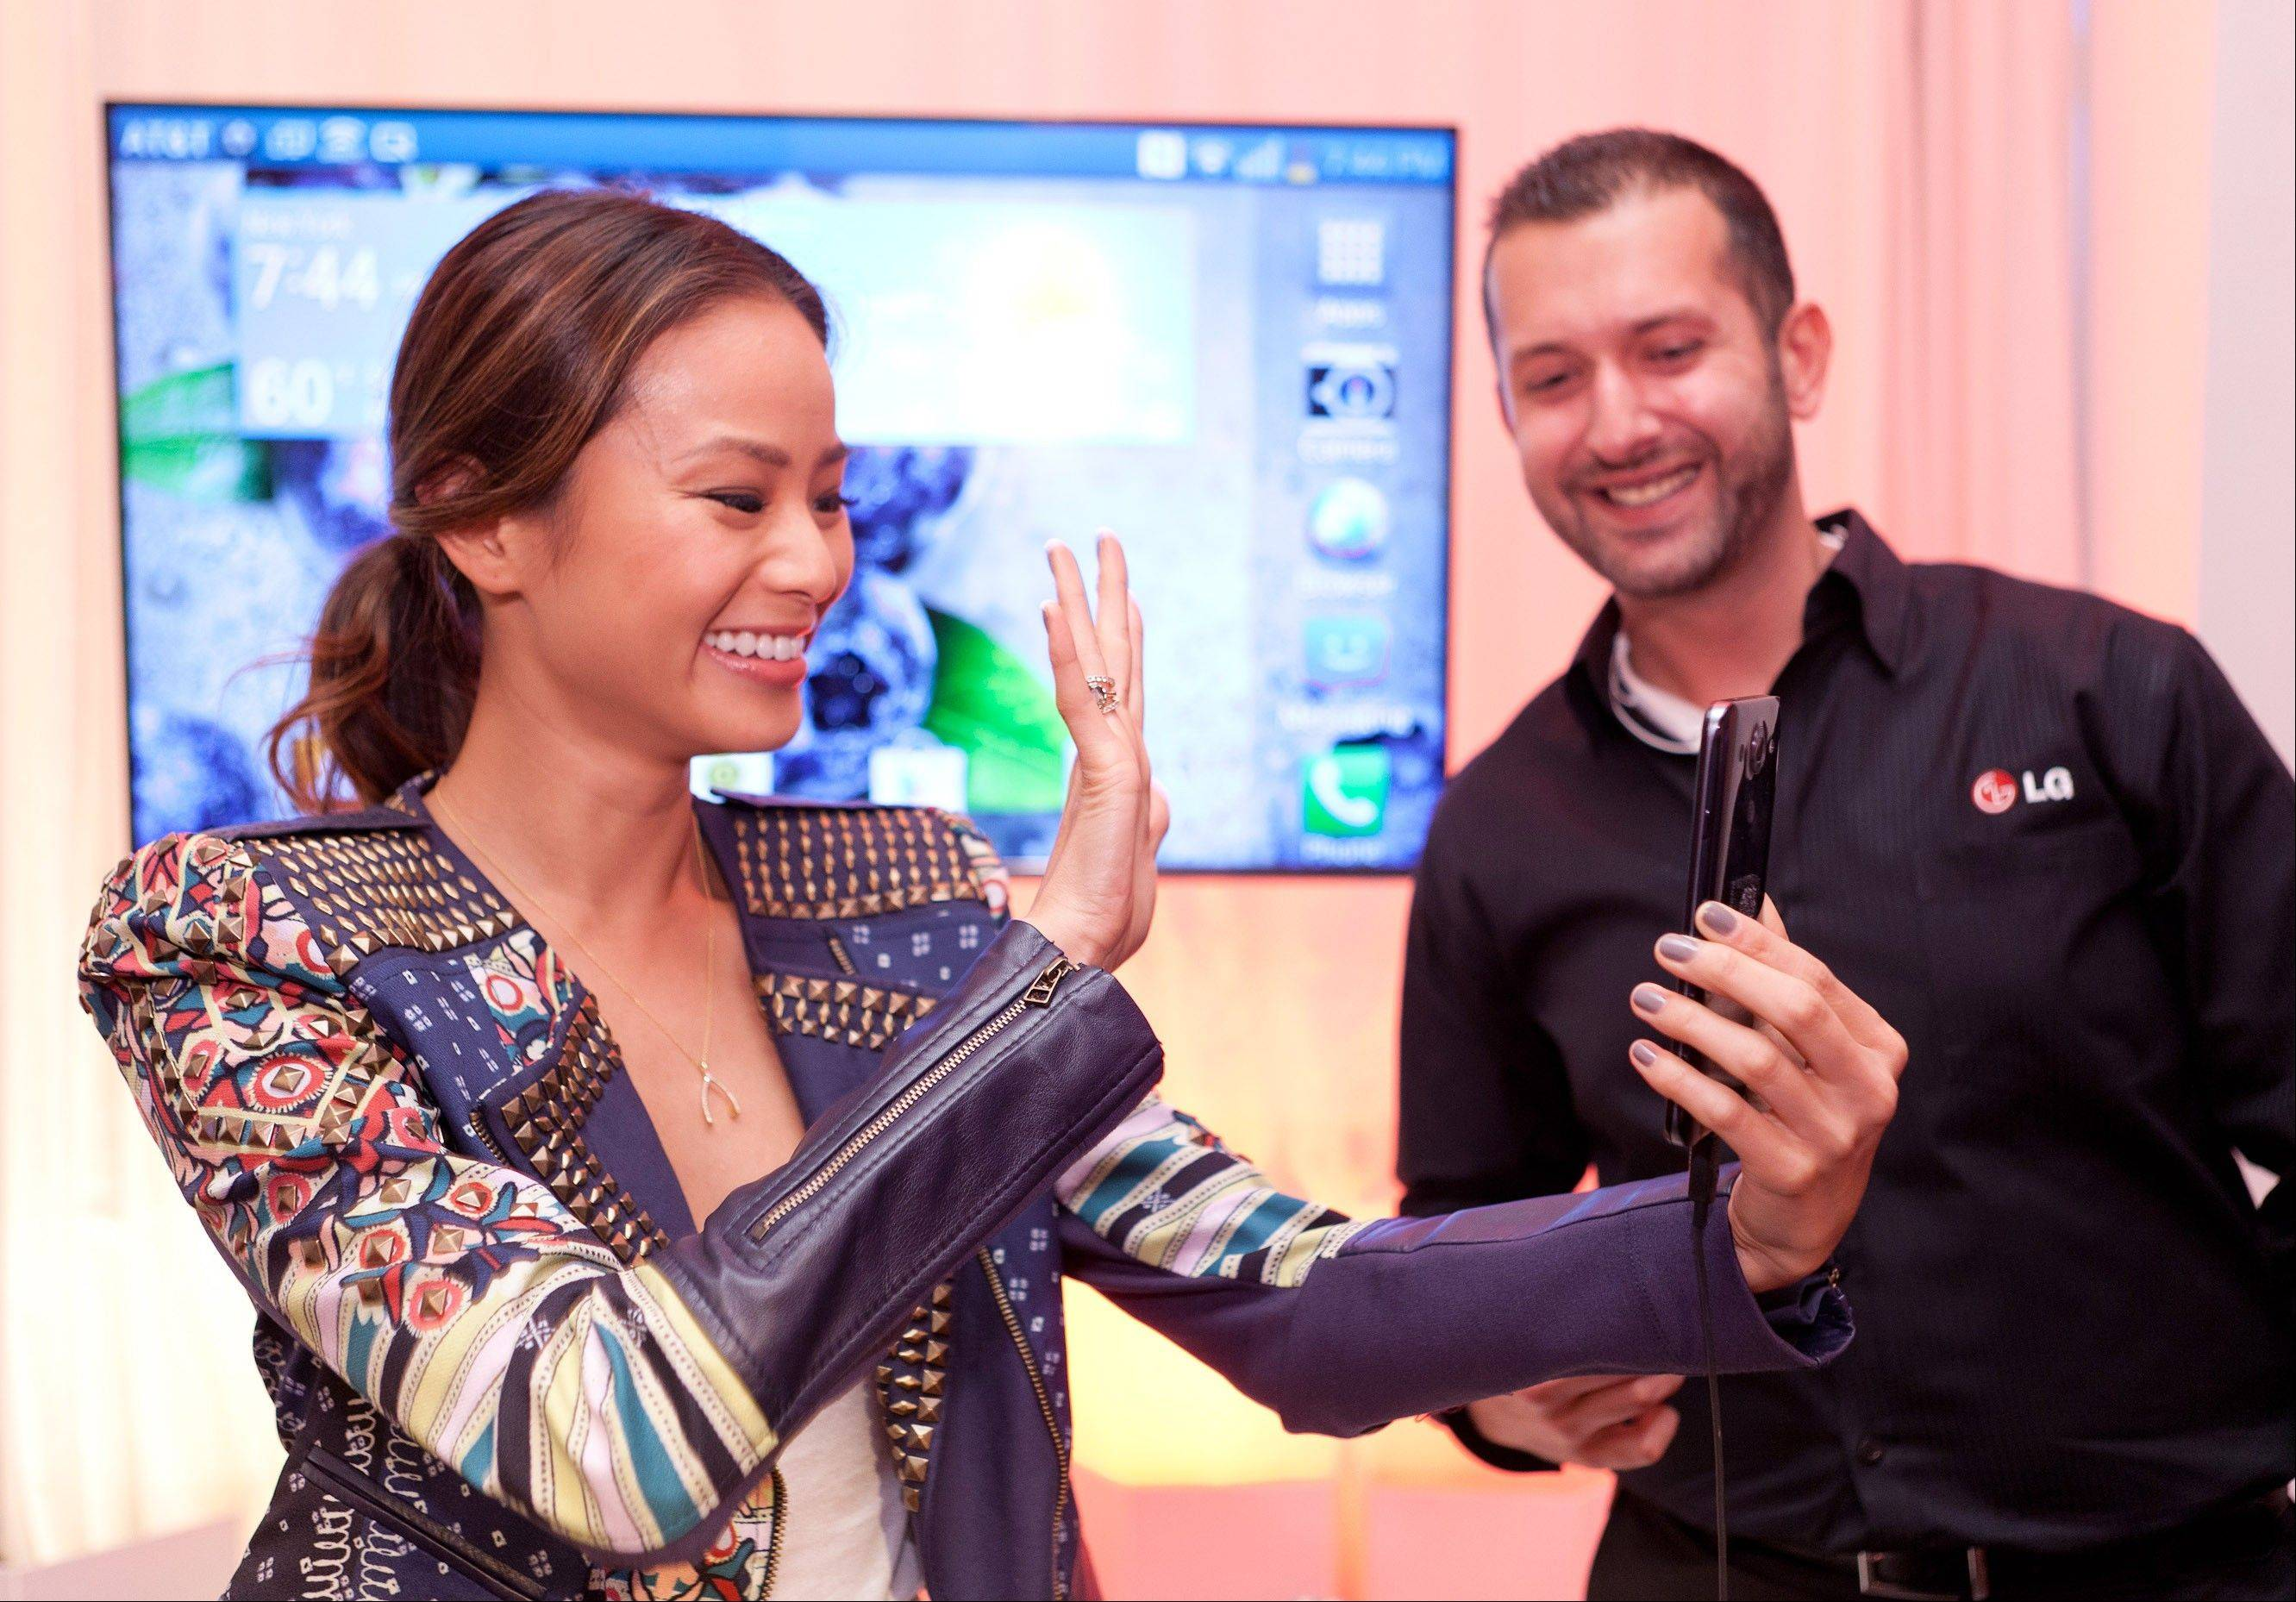 Actress Jamie Chung tries out the LG Optimus G phone with Hamed Nusraty during the Wednesday launch.Nearly 100 wireless companies across 43 countries participate in the overseas database for reported stolen mobile phones.